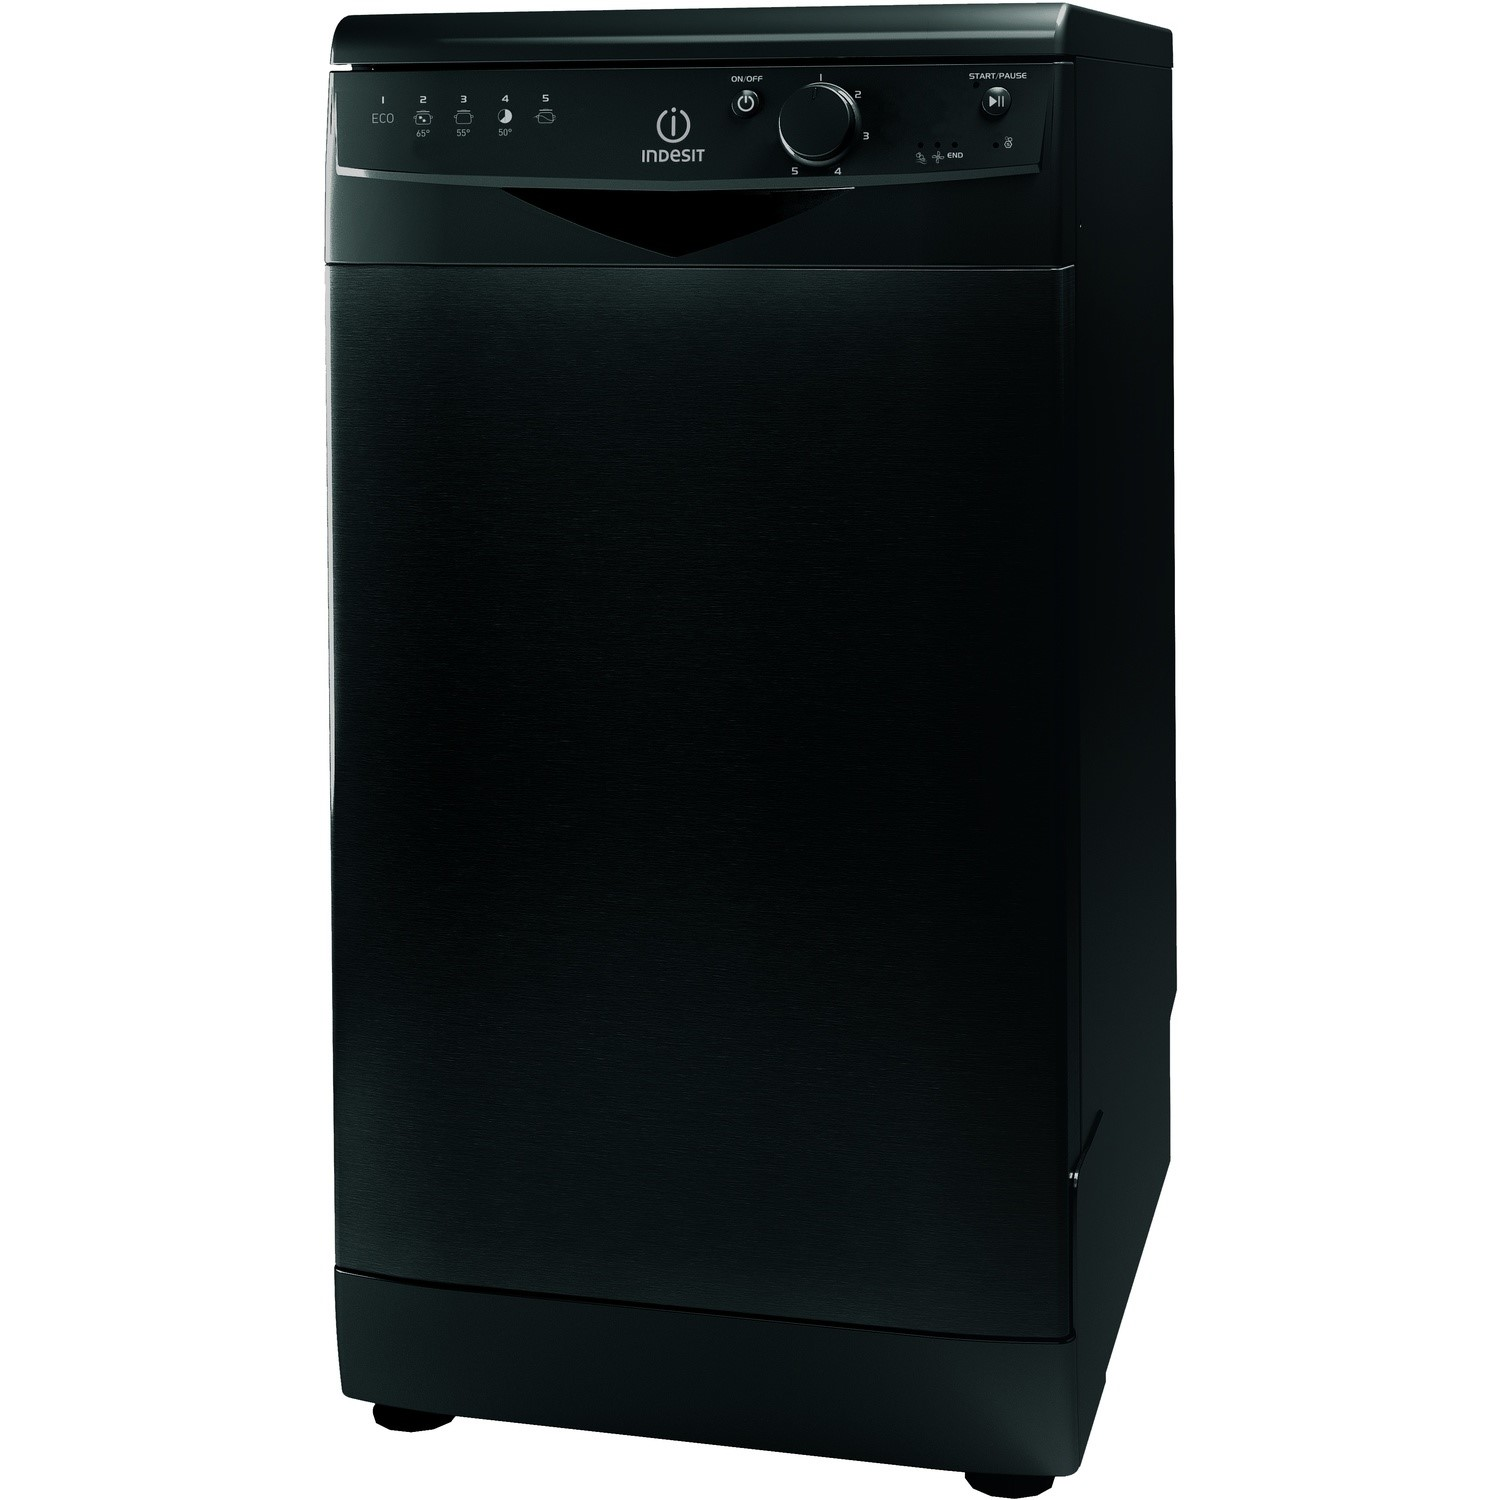 Dishwasher Indesit DSR 15B3 EN: reviews, technical specifications, comparison with competitors 24